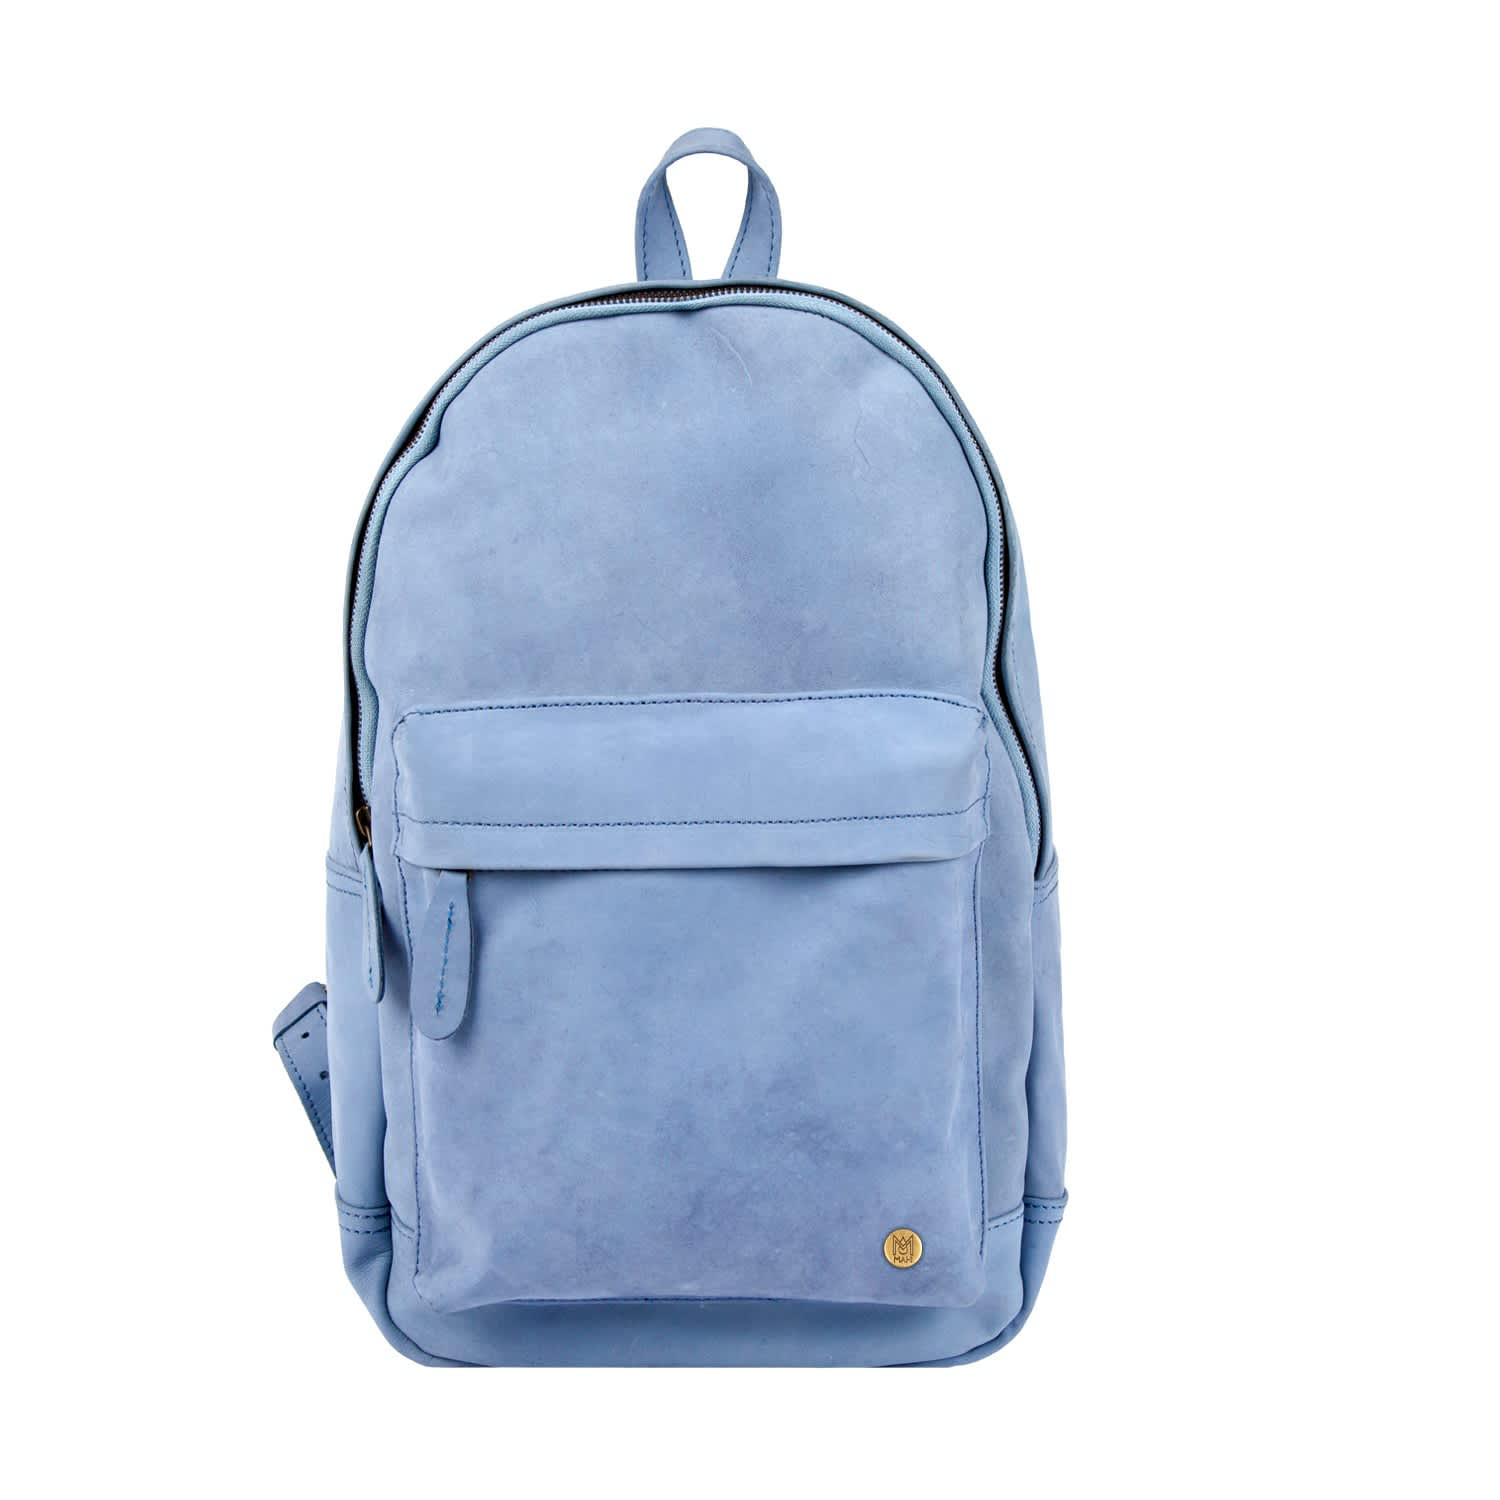 5082c19b7c9 Leather Classic Backpack Rucksack In Pastel Blue by MAHI Leather